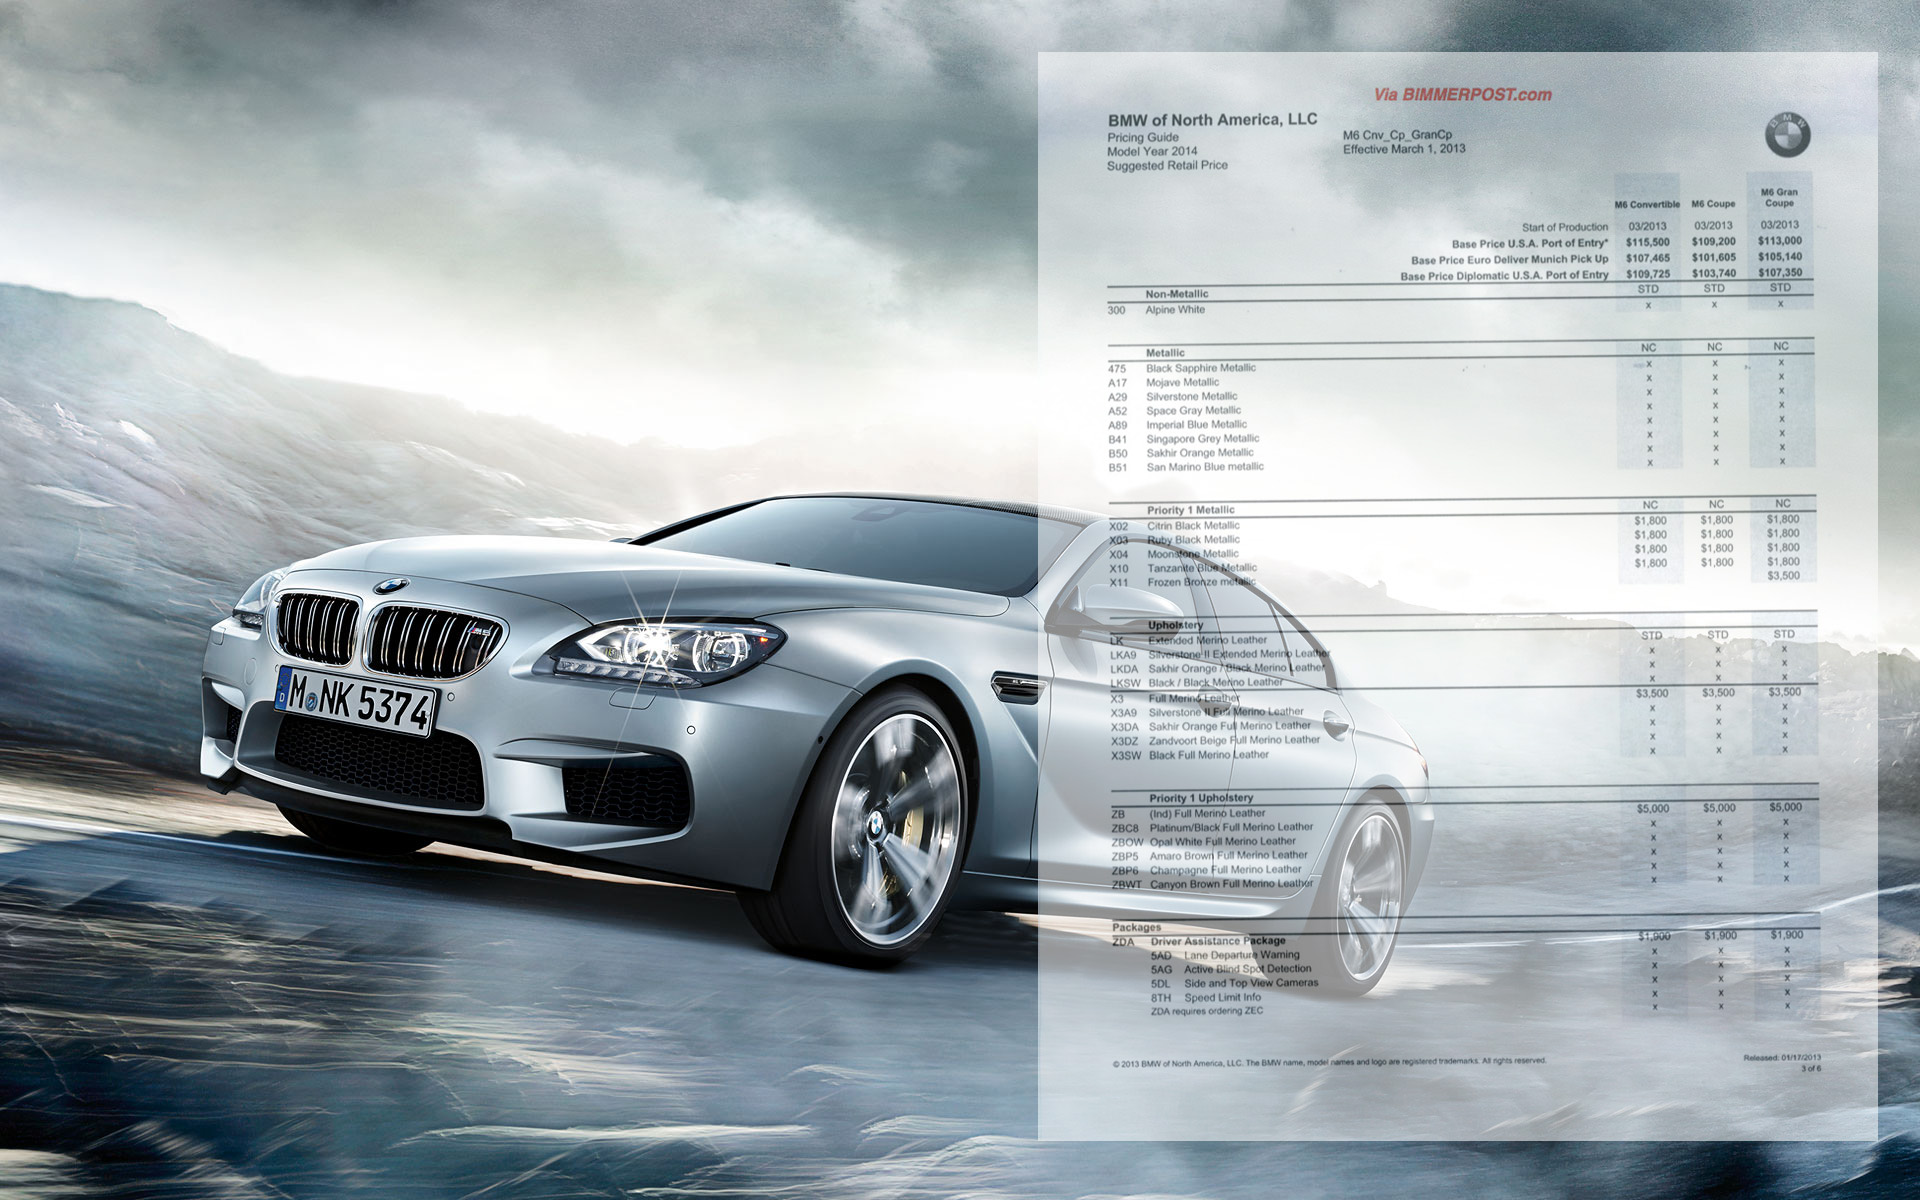 2014 BMW M6 Gran Coupe Price Announced at $113,000 and with Manual Transmission Option